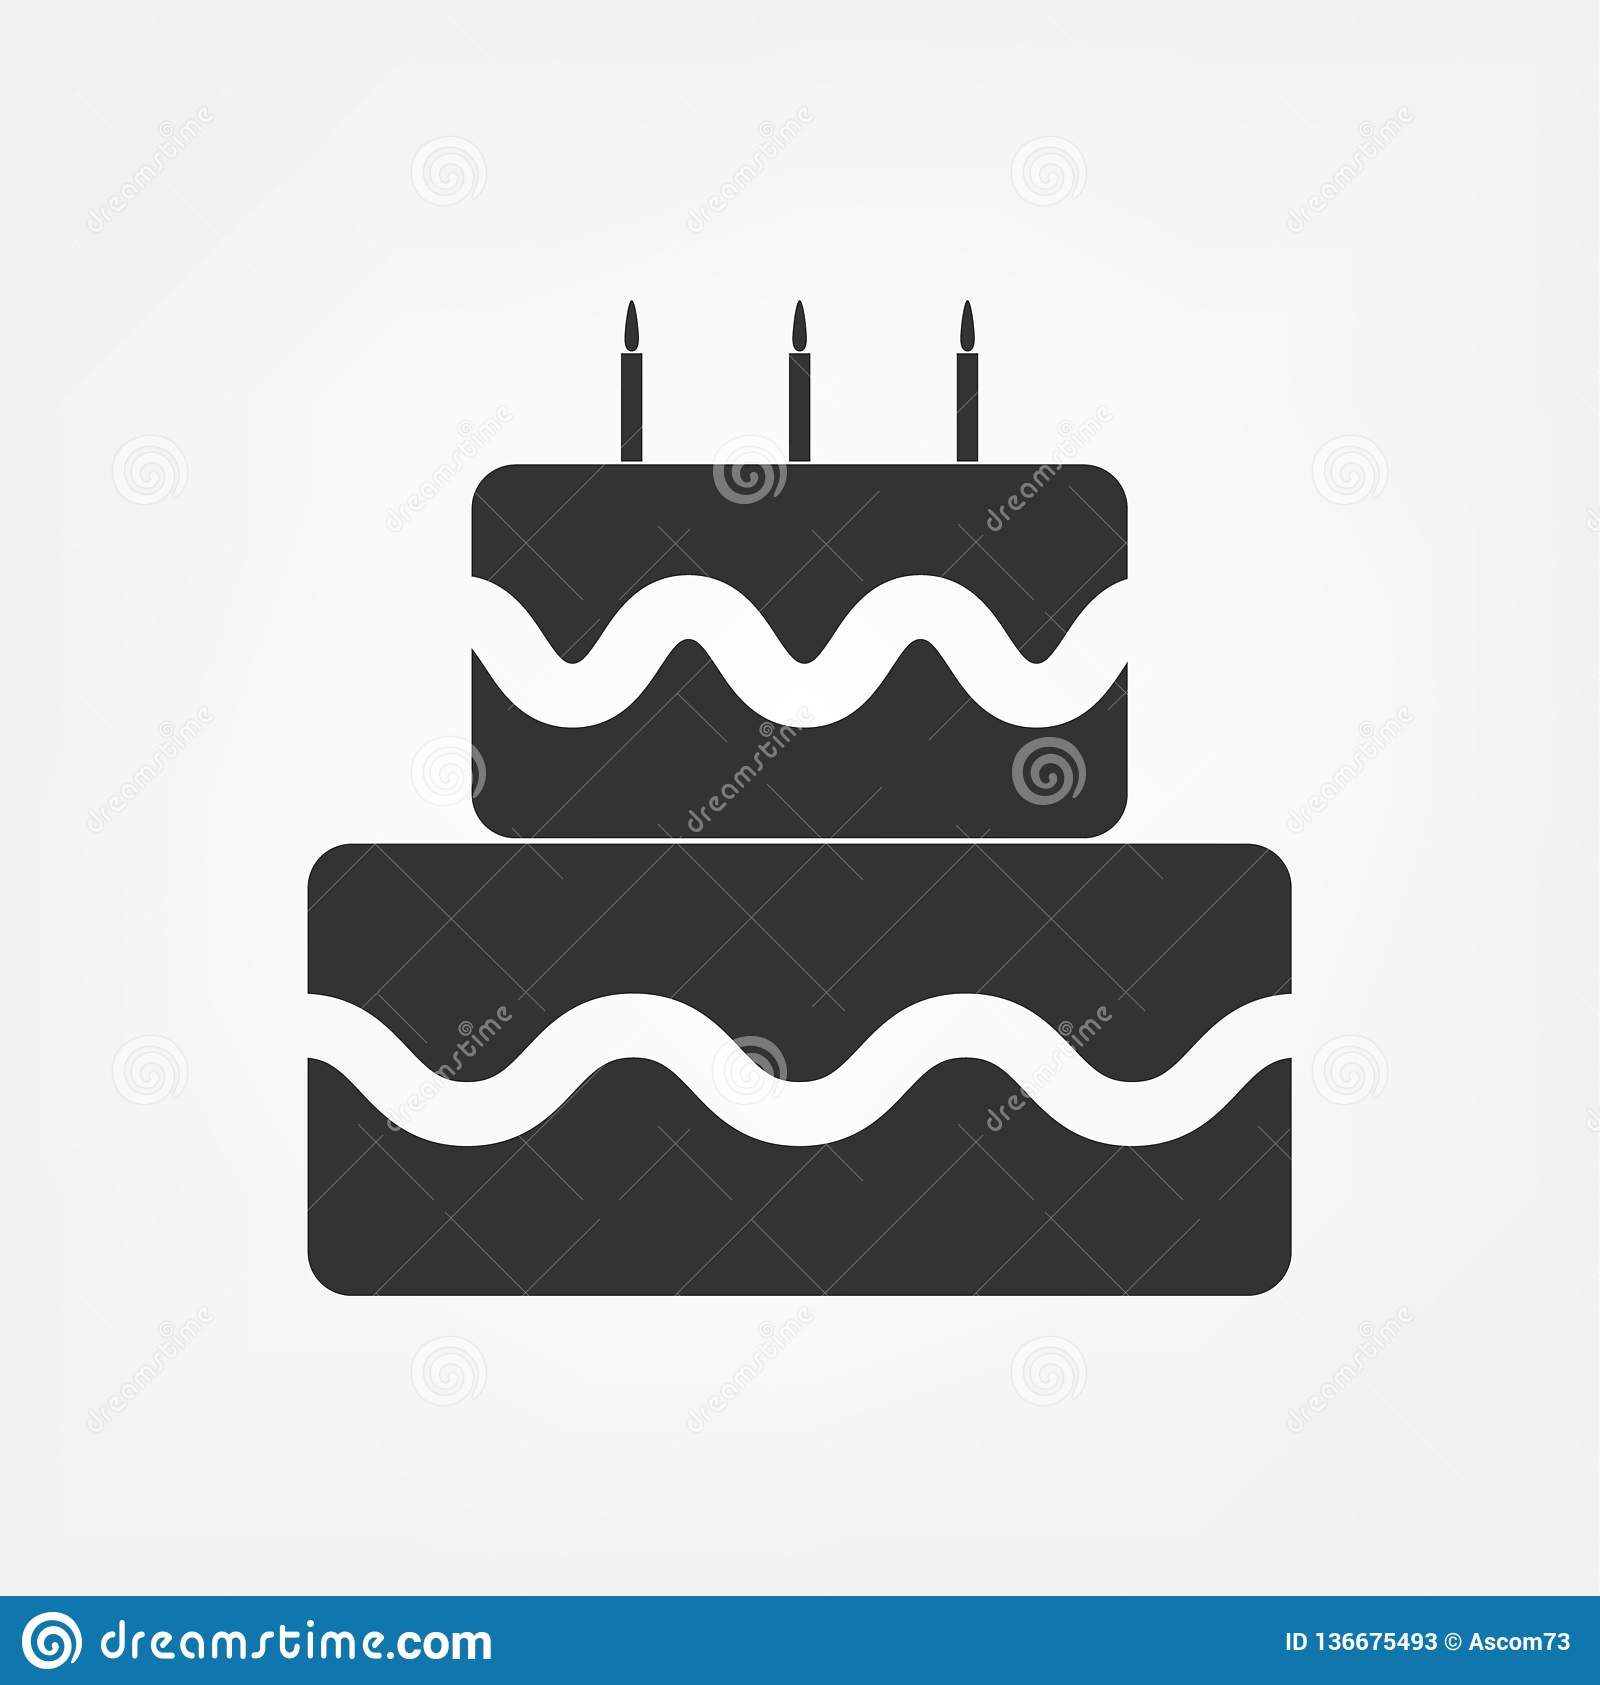 Birthday Cake Vector Icon Celebration With Three Candles For Graphic Design Logo Web